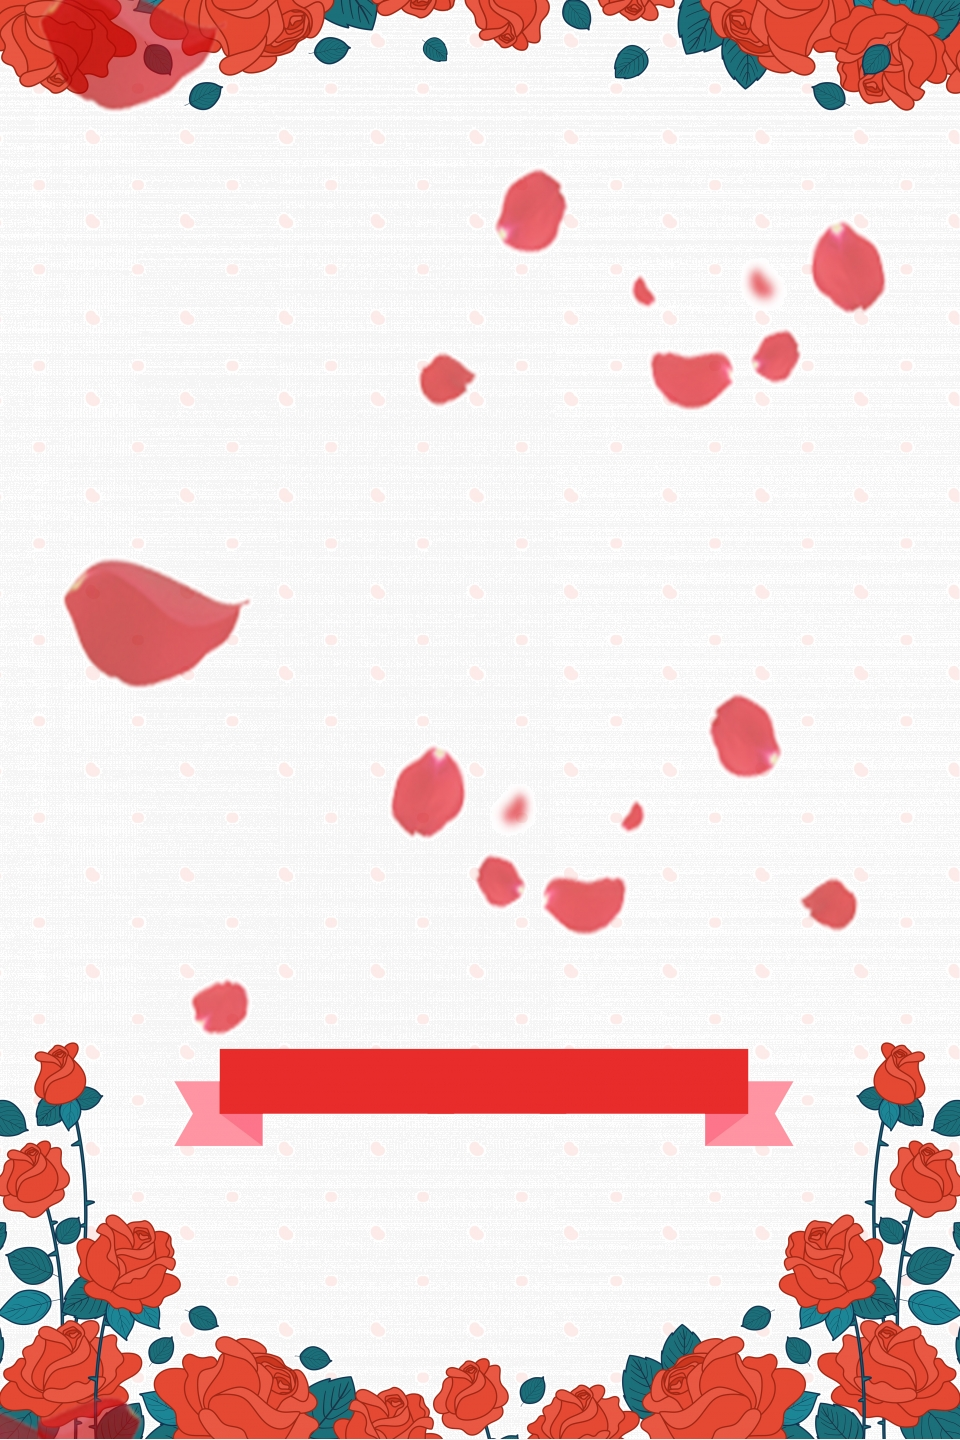 Simple Cartoon Flower Petals Background For Love Price 520 Valentine S Day Background Image For Free Download